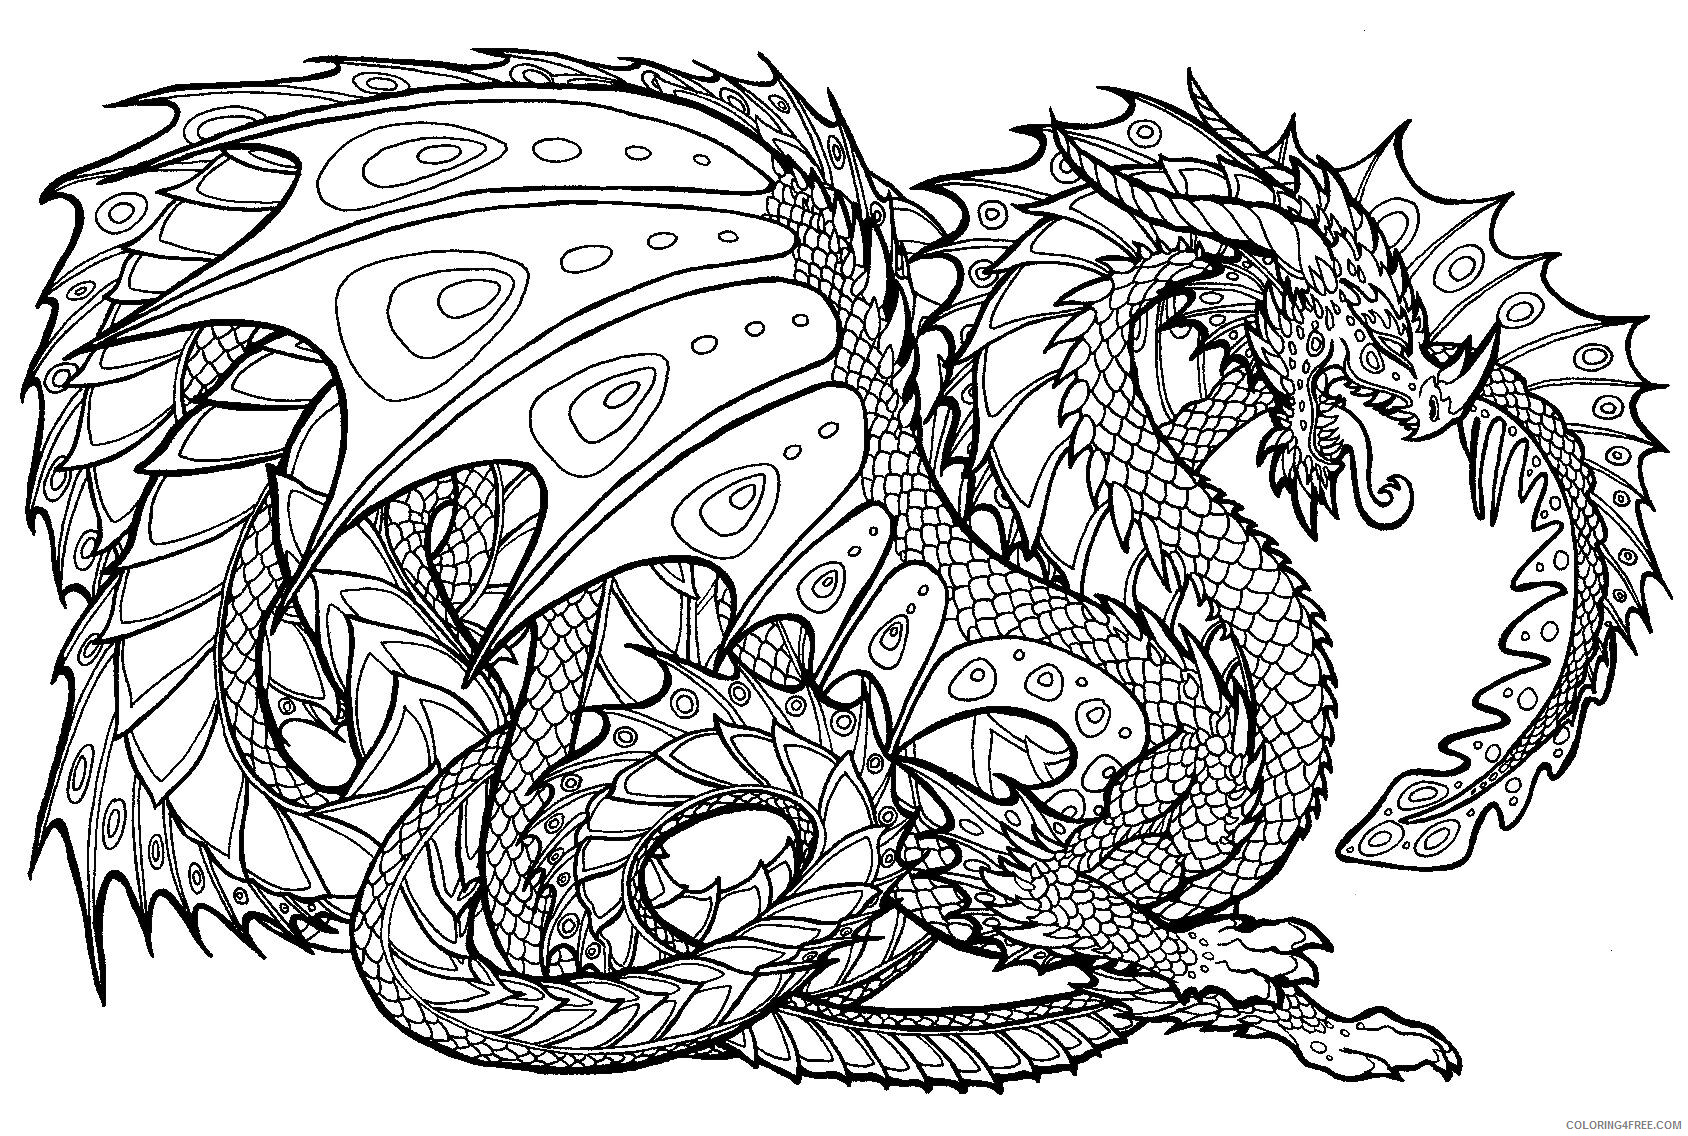 Fantasy Dragons Coloring Pages Dragon for Adults Printable 2021 2562 Coloring4free